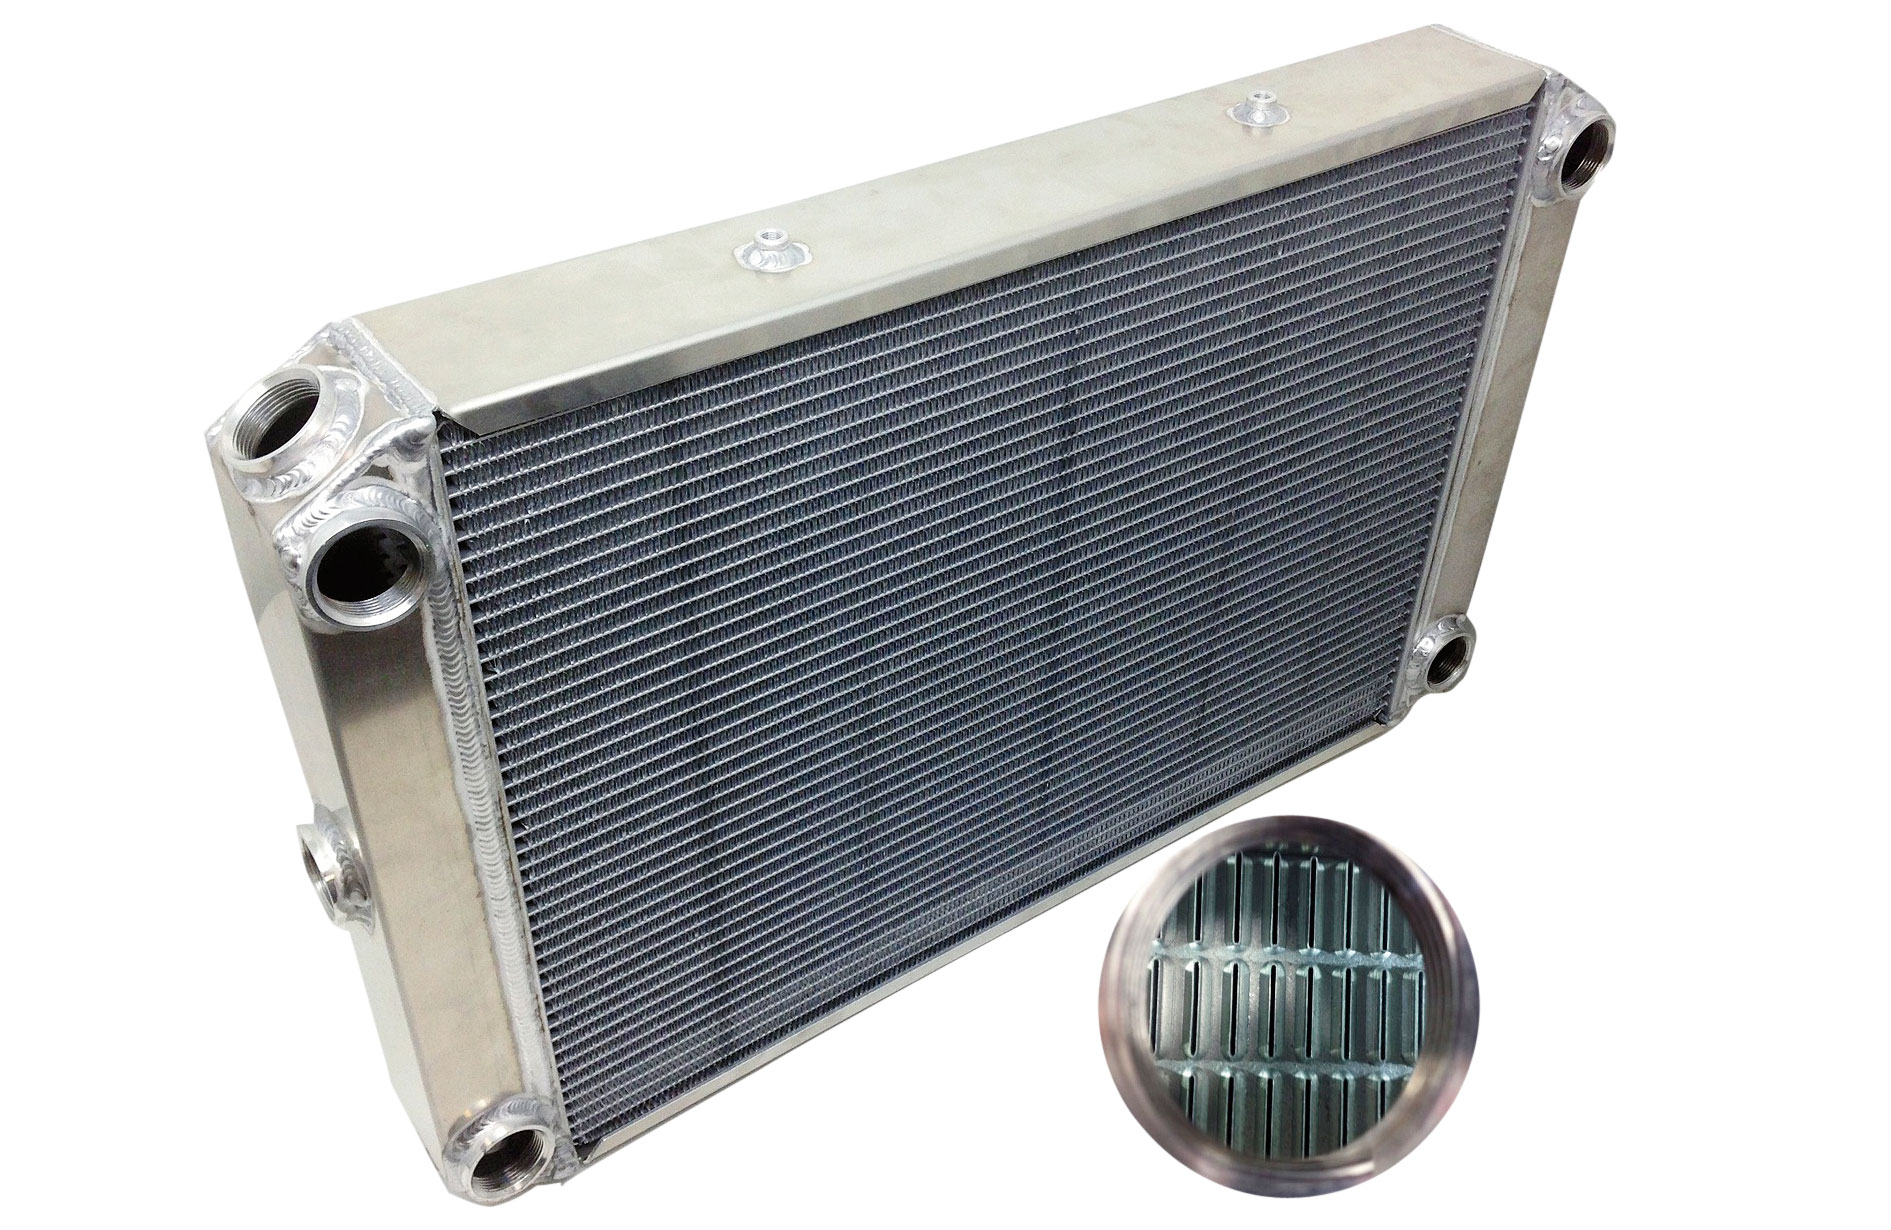 These advanced cooling modules also include eight separate 3/8-inch x 24 threaded bungs for attaching optional mounting bracket kits and hardware allowing the unique option of using this radiator as a traditional top and bottom tank design or the modern crossflow design.